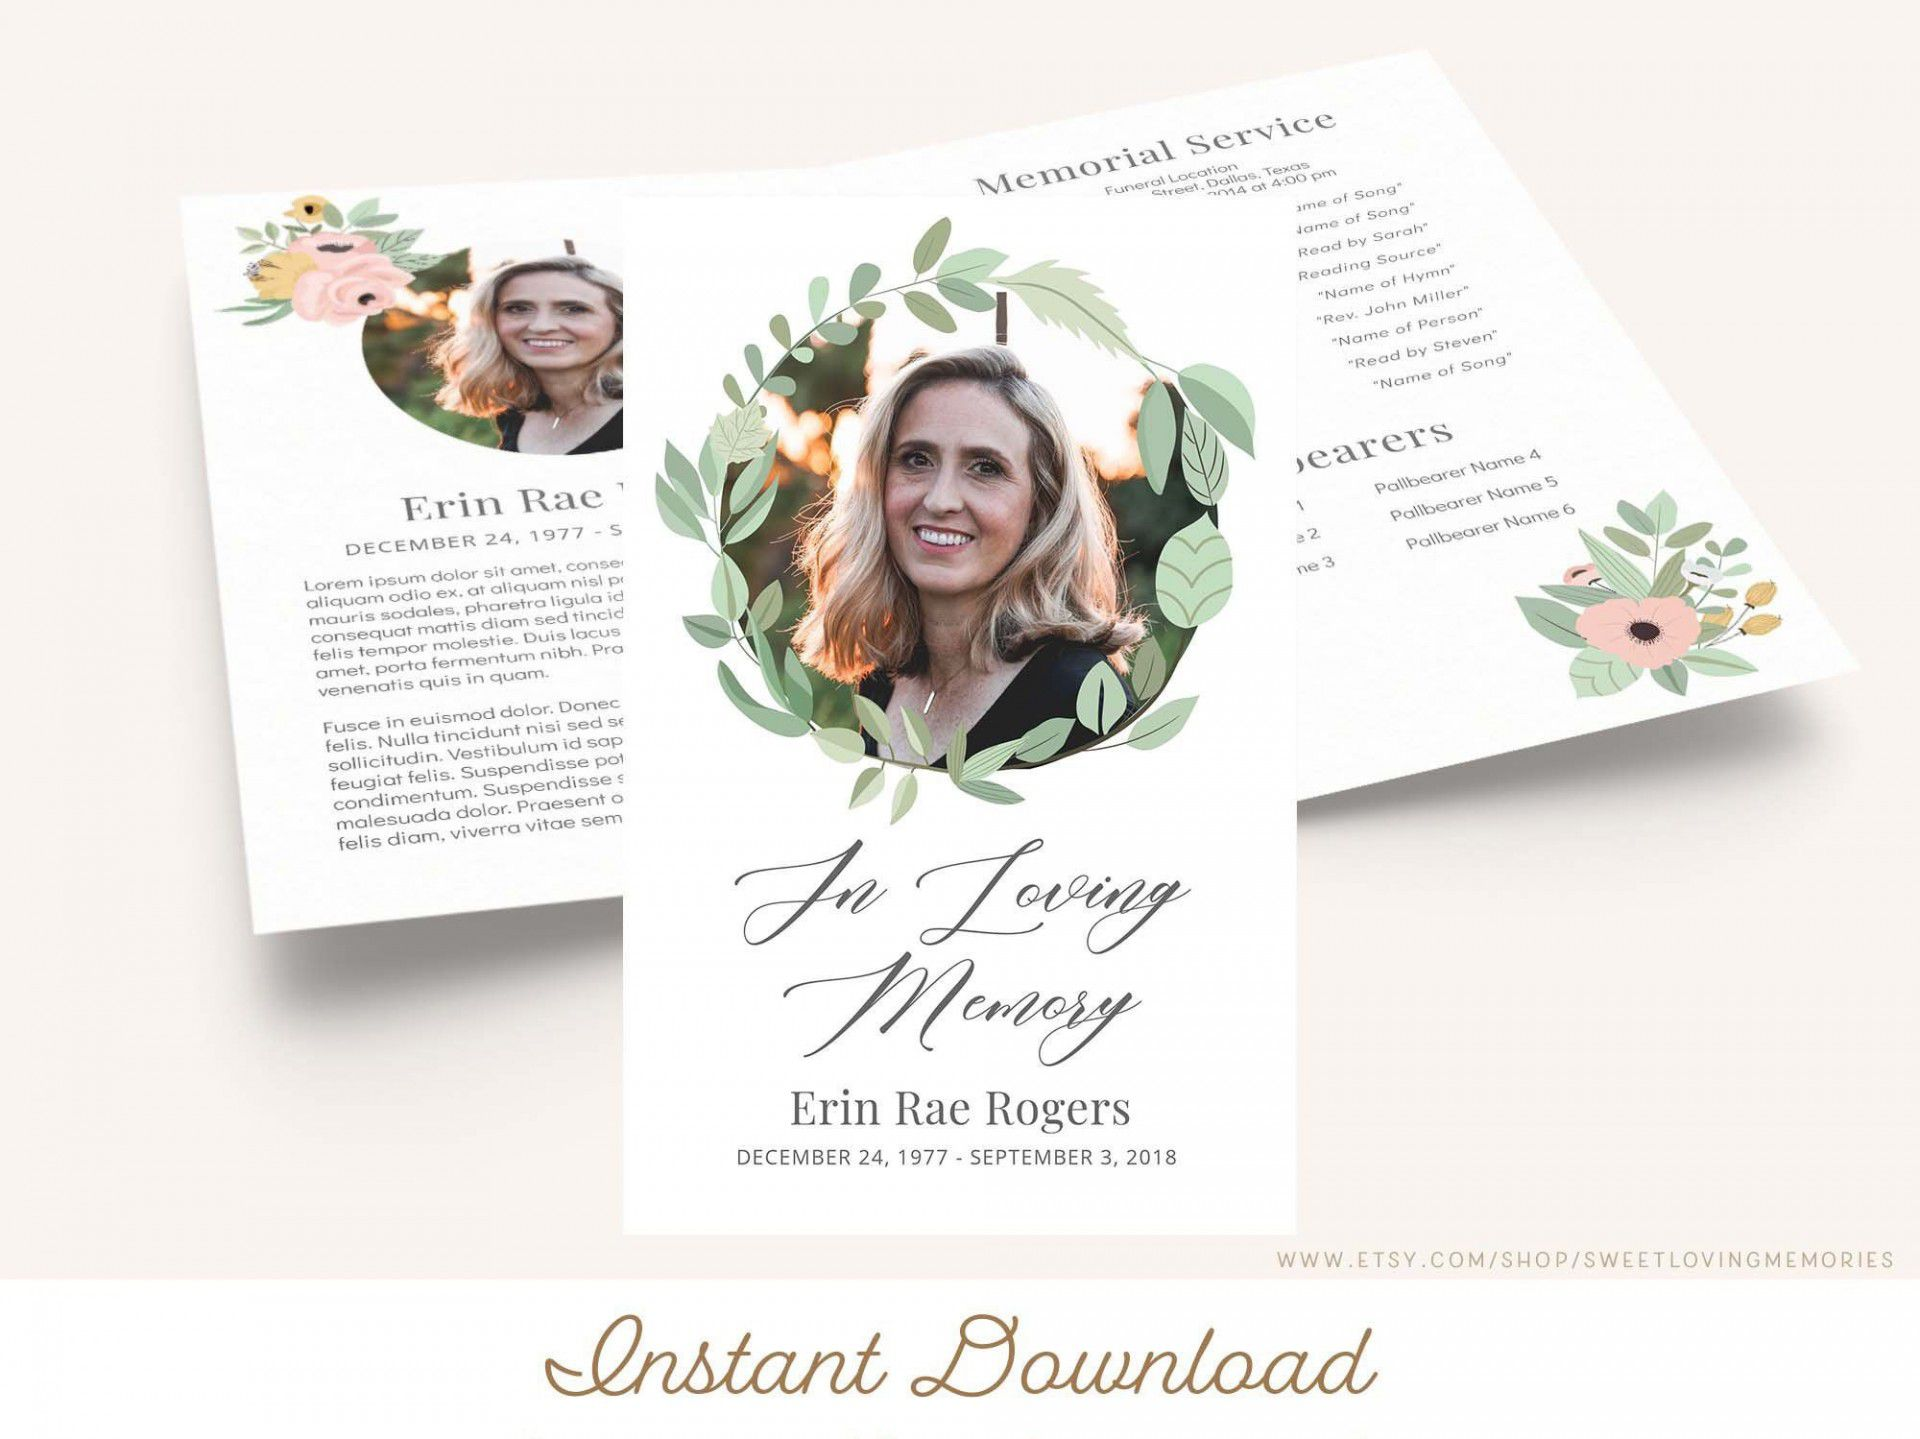 000 Magnificent In Loving Memory Template Image  Templates WordFull